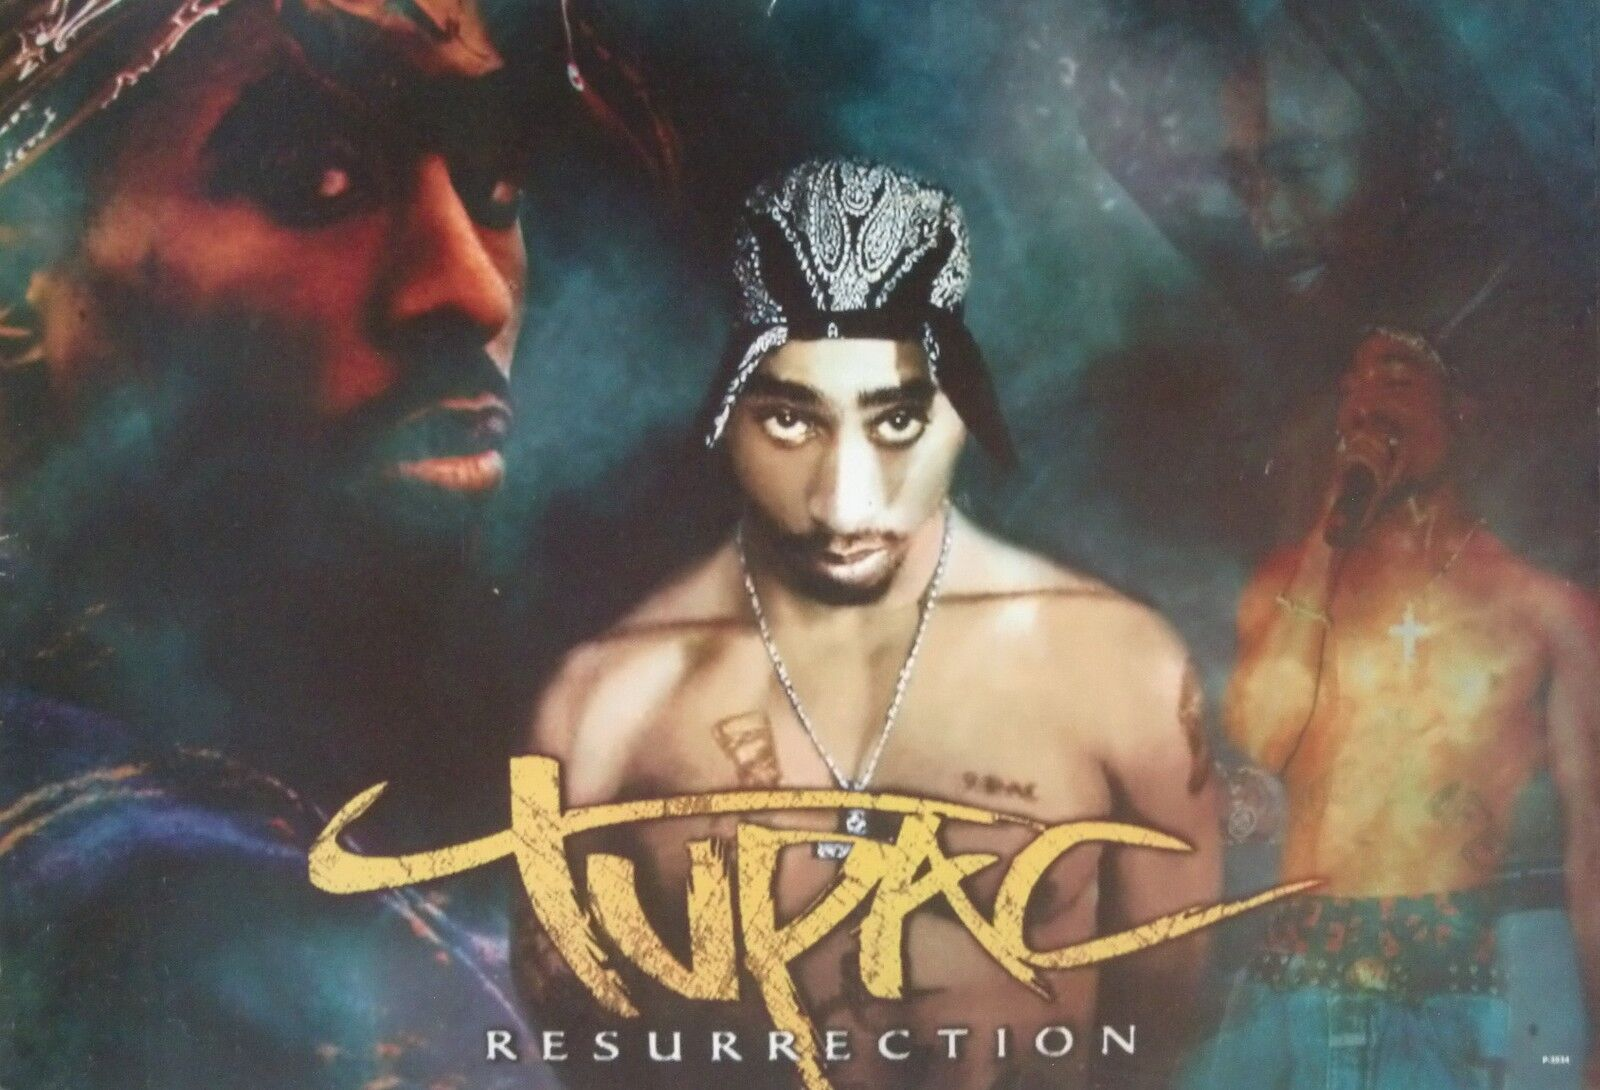 a biography of tupac shakur a rap musician Find bio, credits and filmography information for tupac shakur on allmovie - infamous 25-year-old gangsta rapper and actor tupac shakur was shot and killed before he had a .